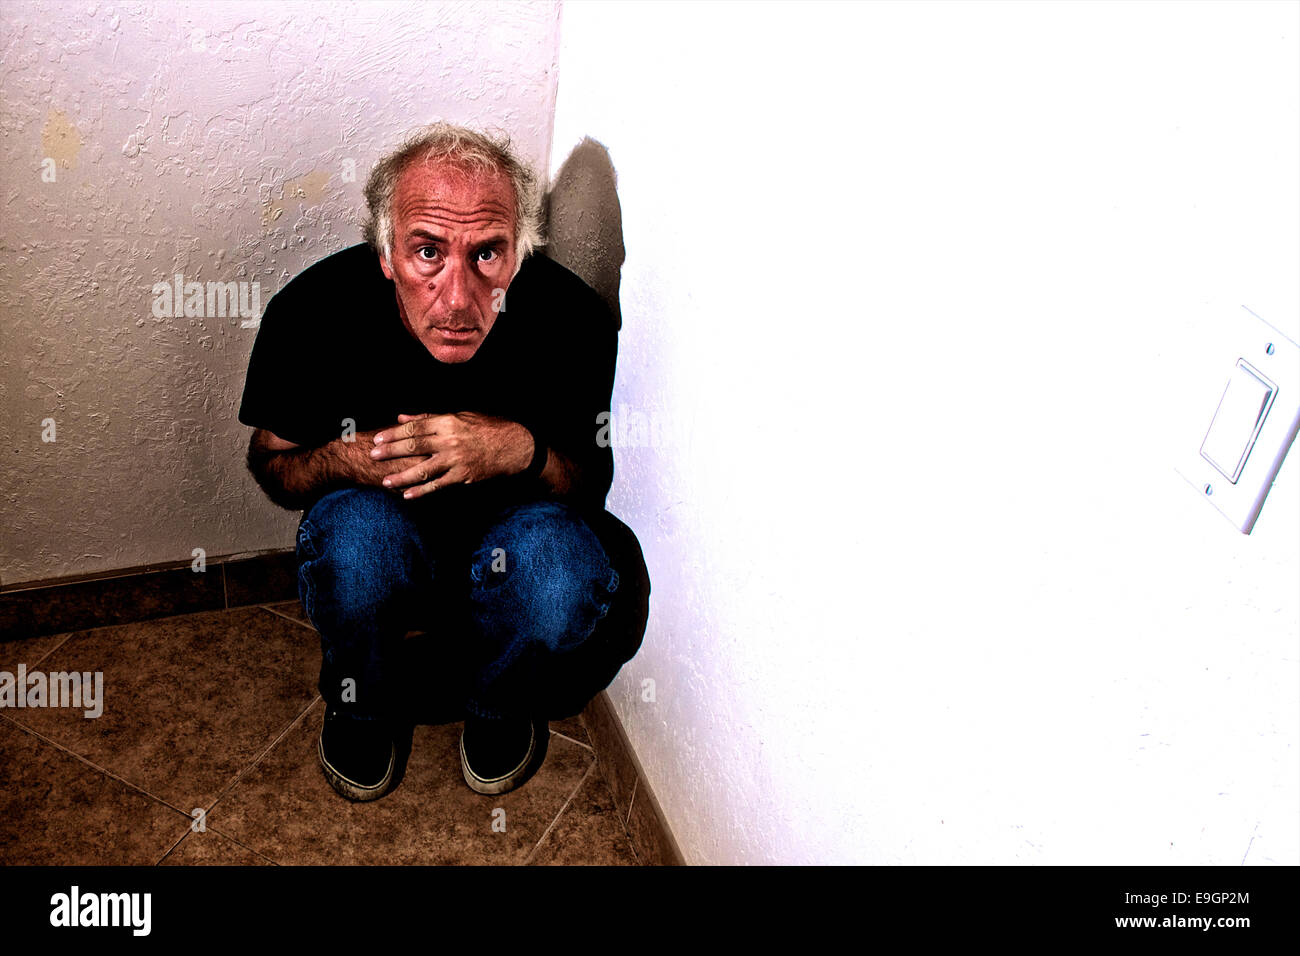 An older white man is crouched down in a corner looking up fearfully at viewer. - Stock Image